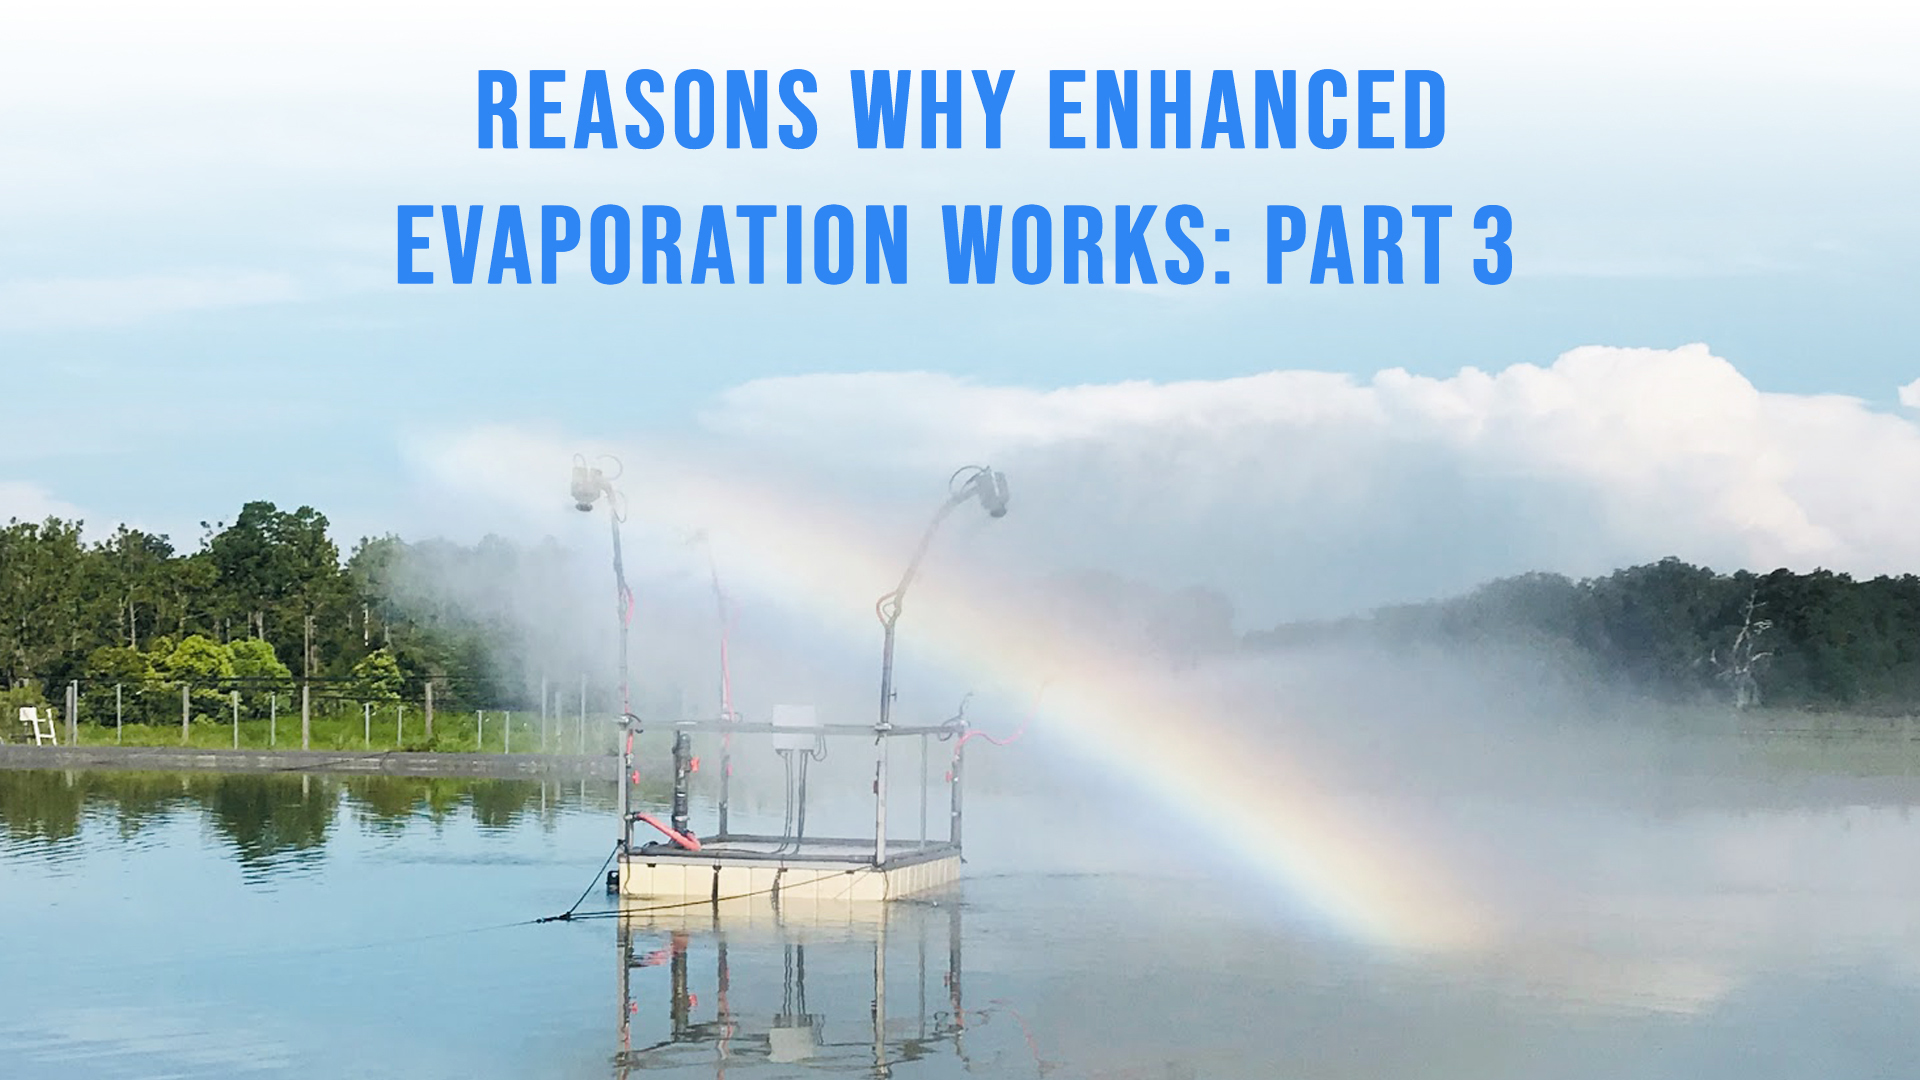 Reasons Why Enhanced Evaporation Works: Part 3